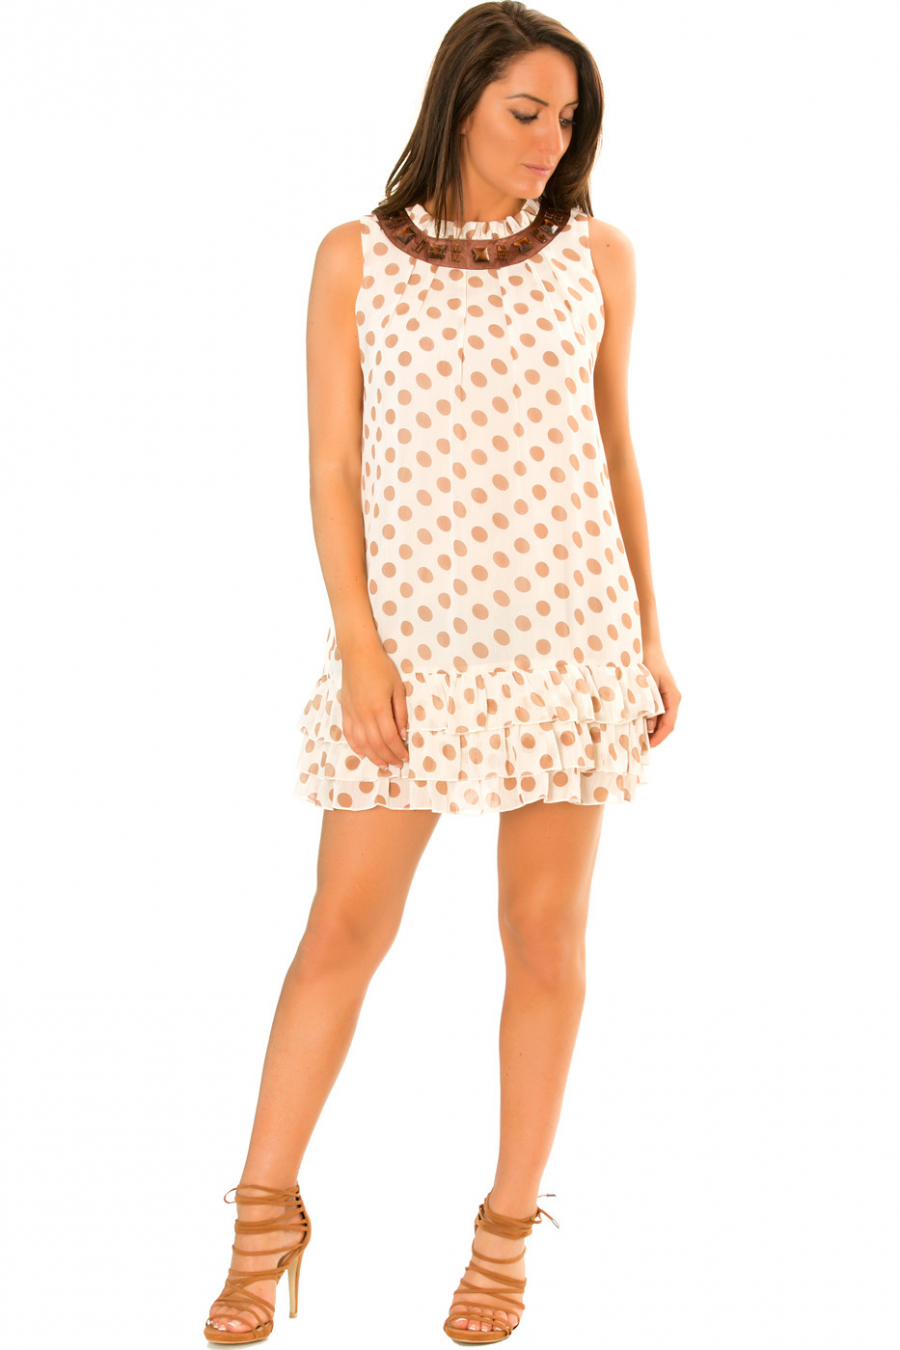 Beige polka-dot sheer dress, pleated at the bottom and round neck. 959